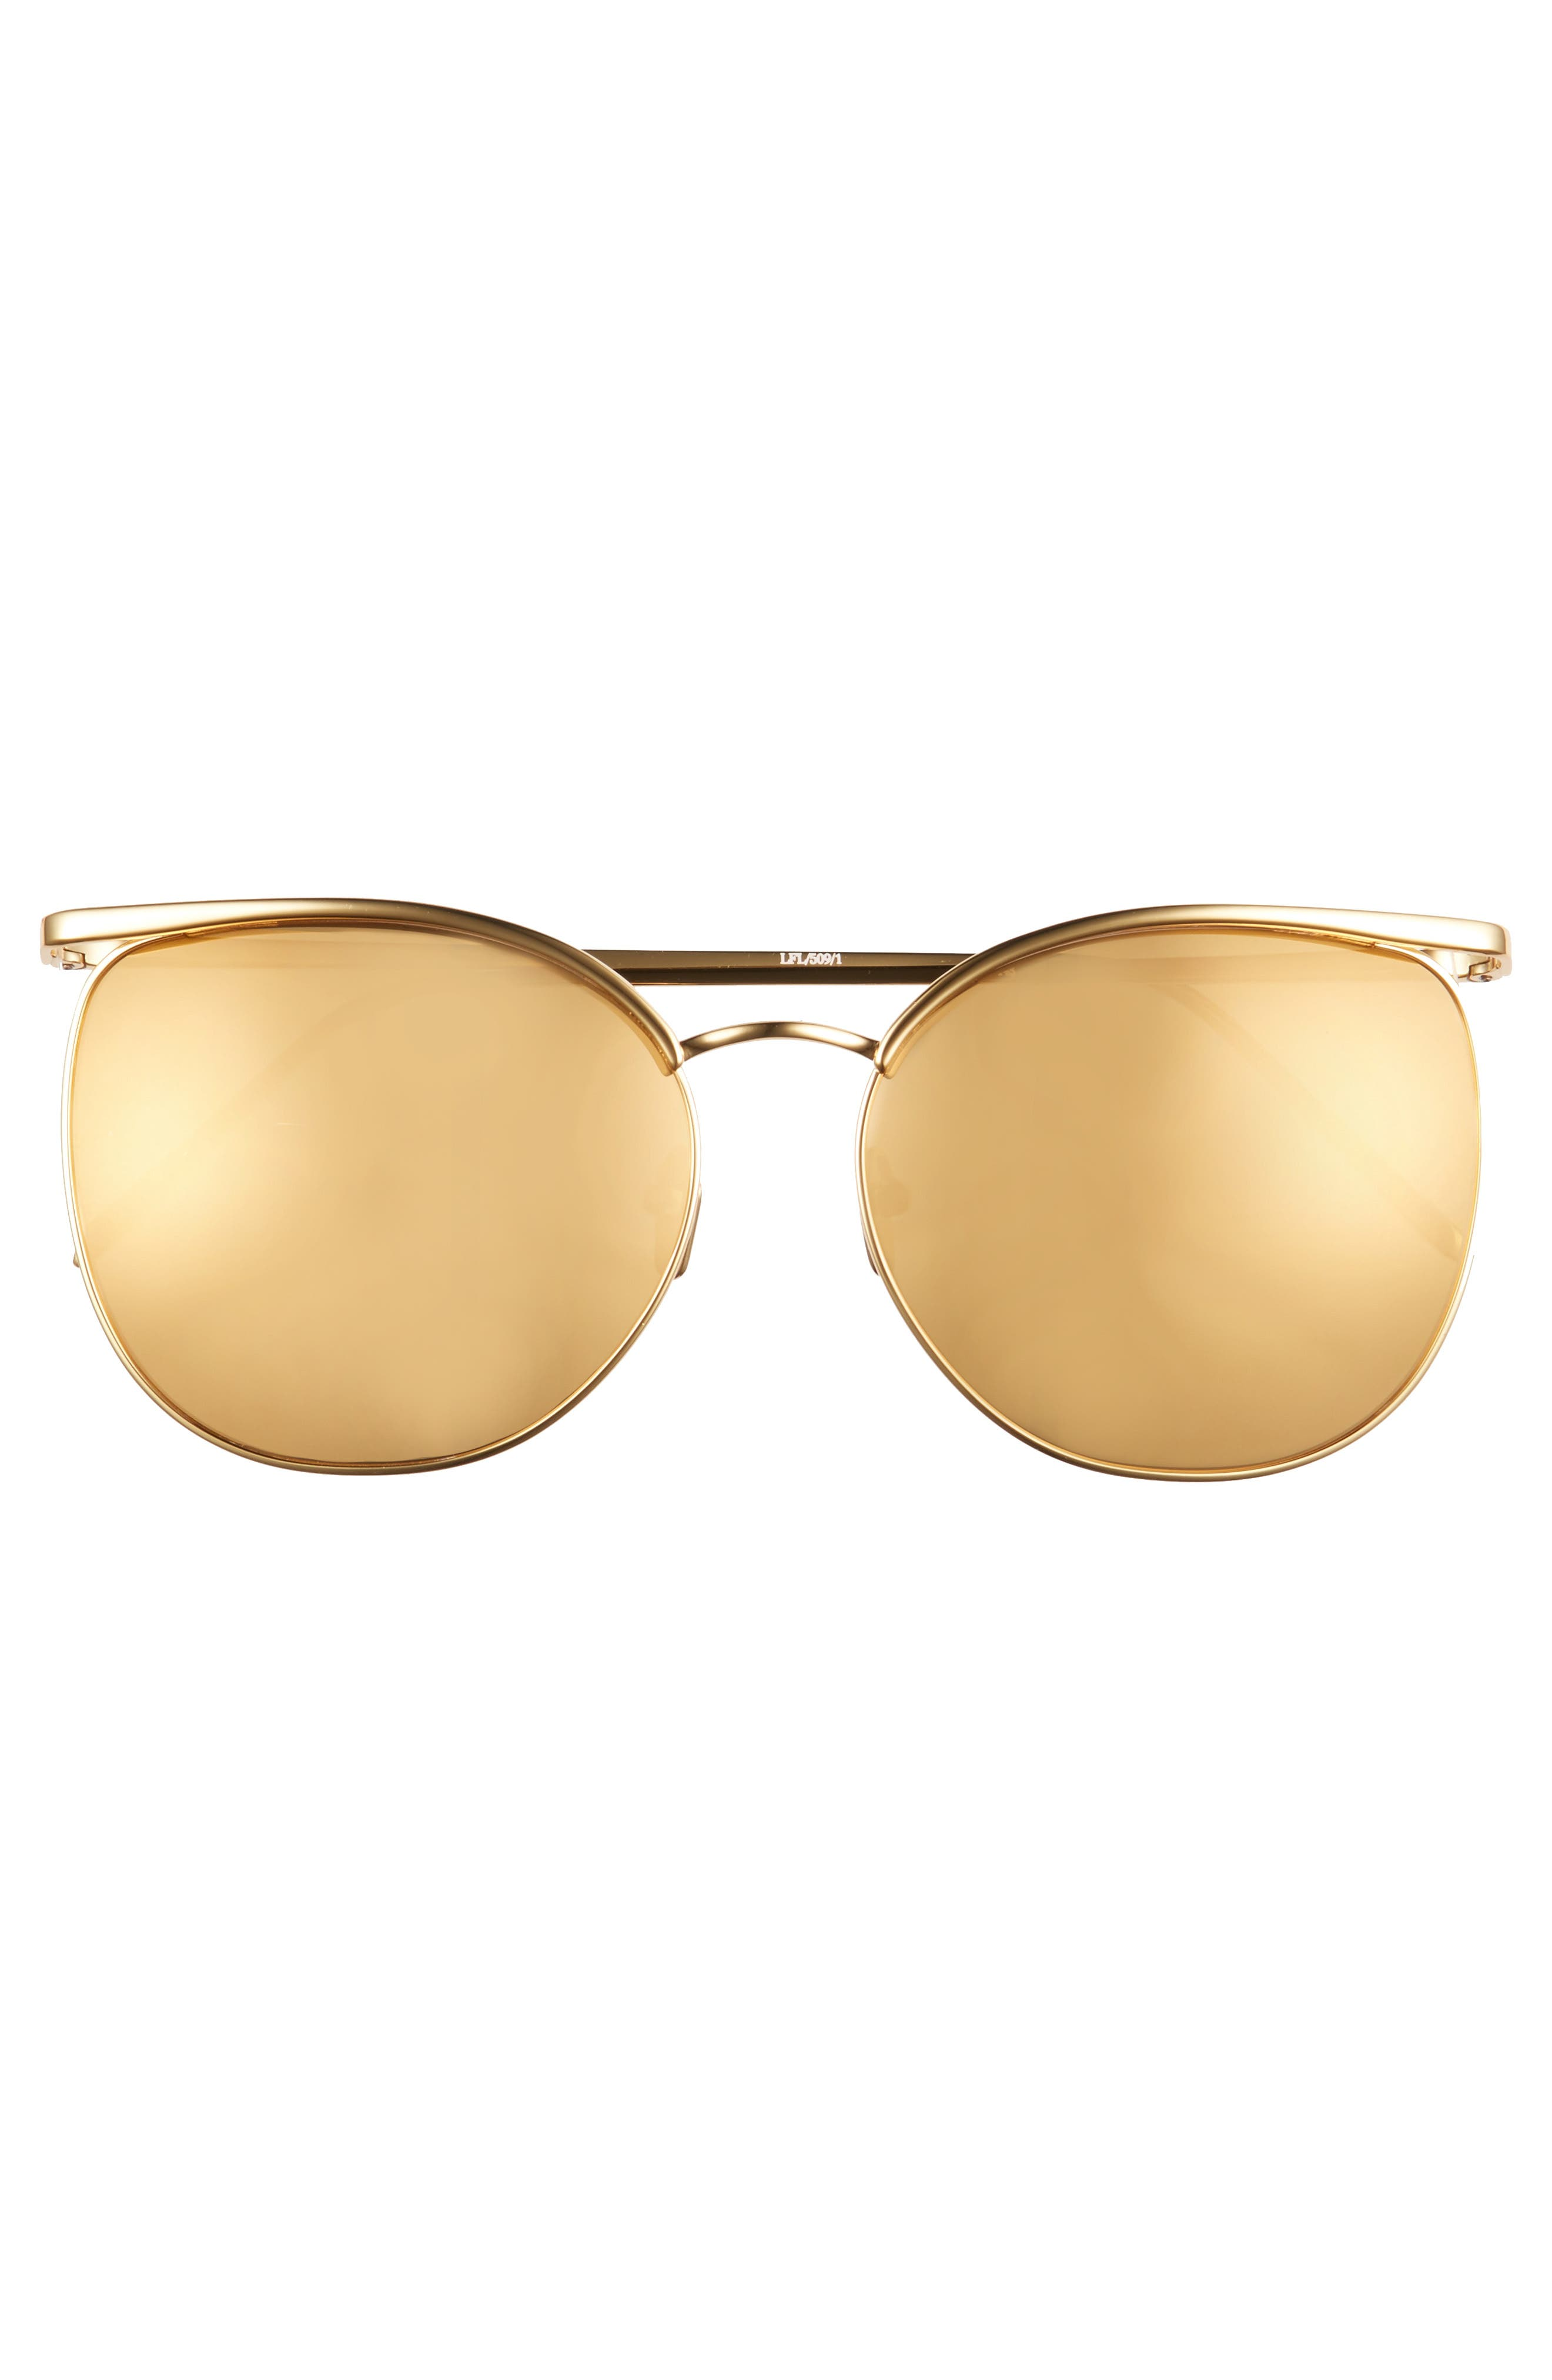 59mm Mirrored 22 Karat Gold Trim Sunglasses,                             Alternate thumbnail 3, color,                             710